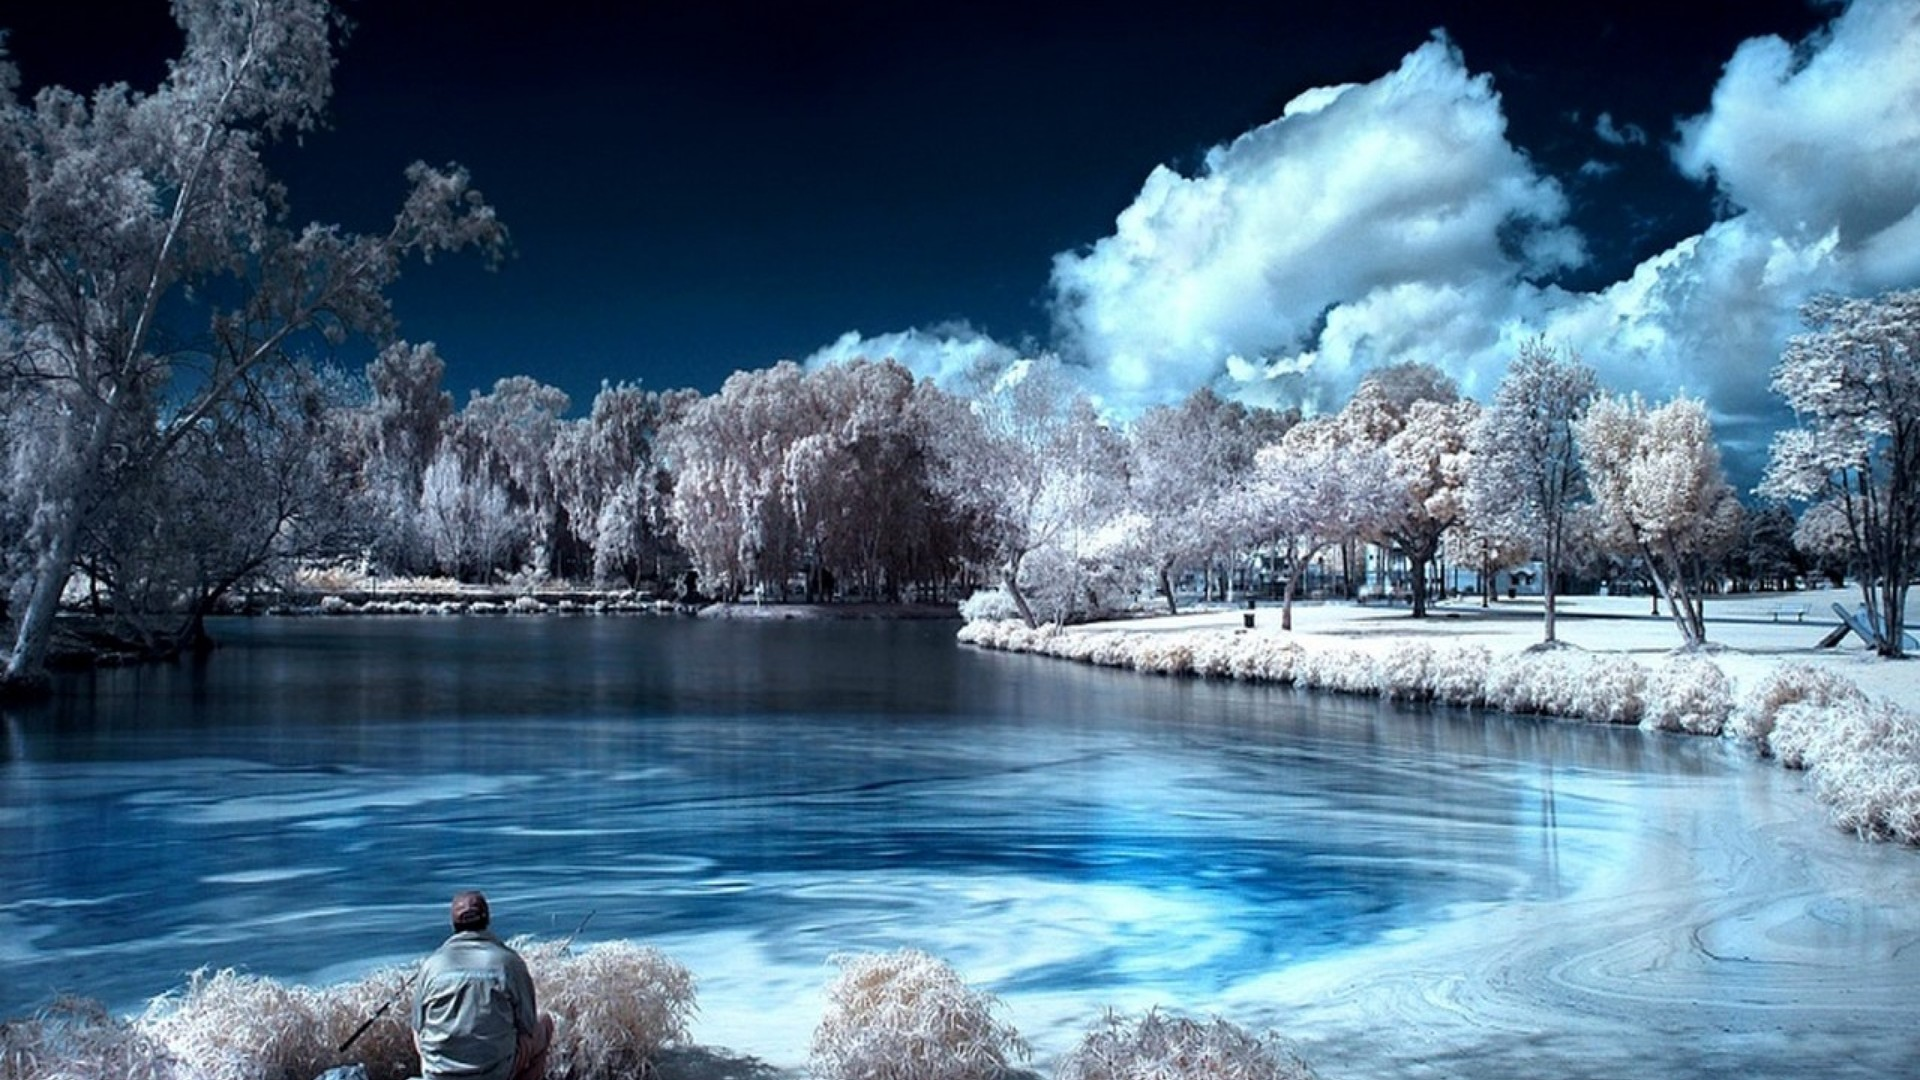 Beautiful Hd Wallpapers 1080p Infrared Photography 303997 Hd Wallpaper Backgrounds Download